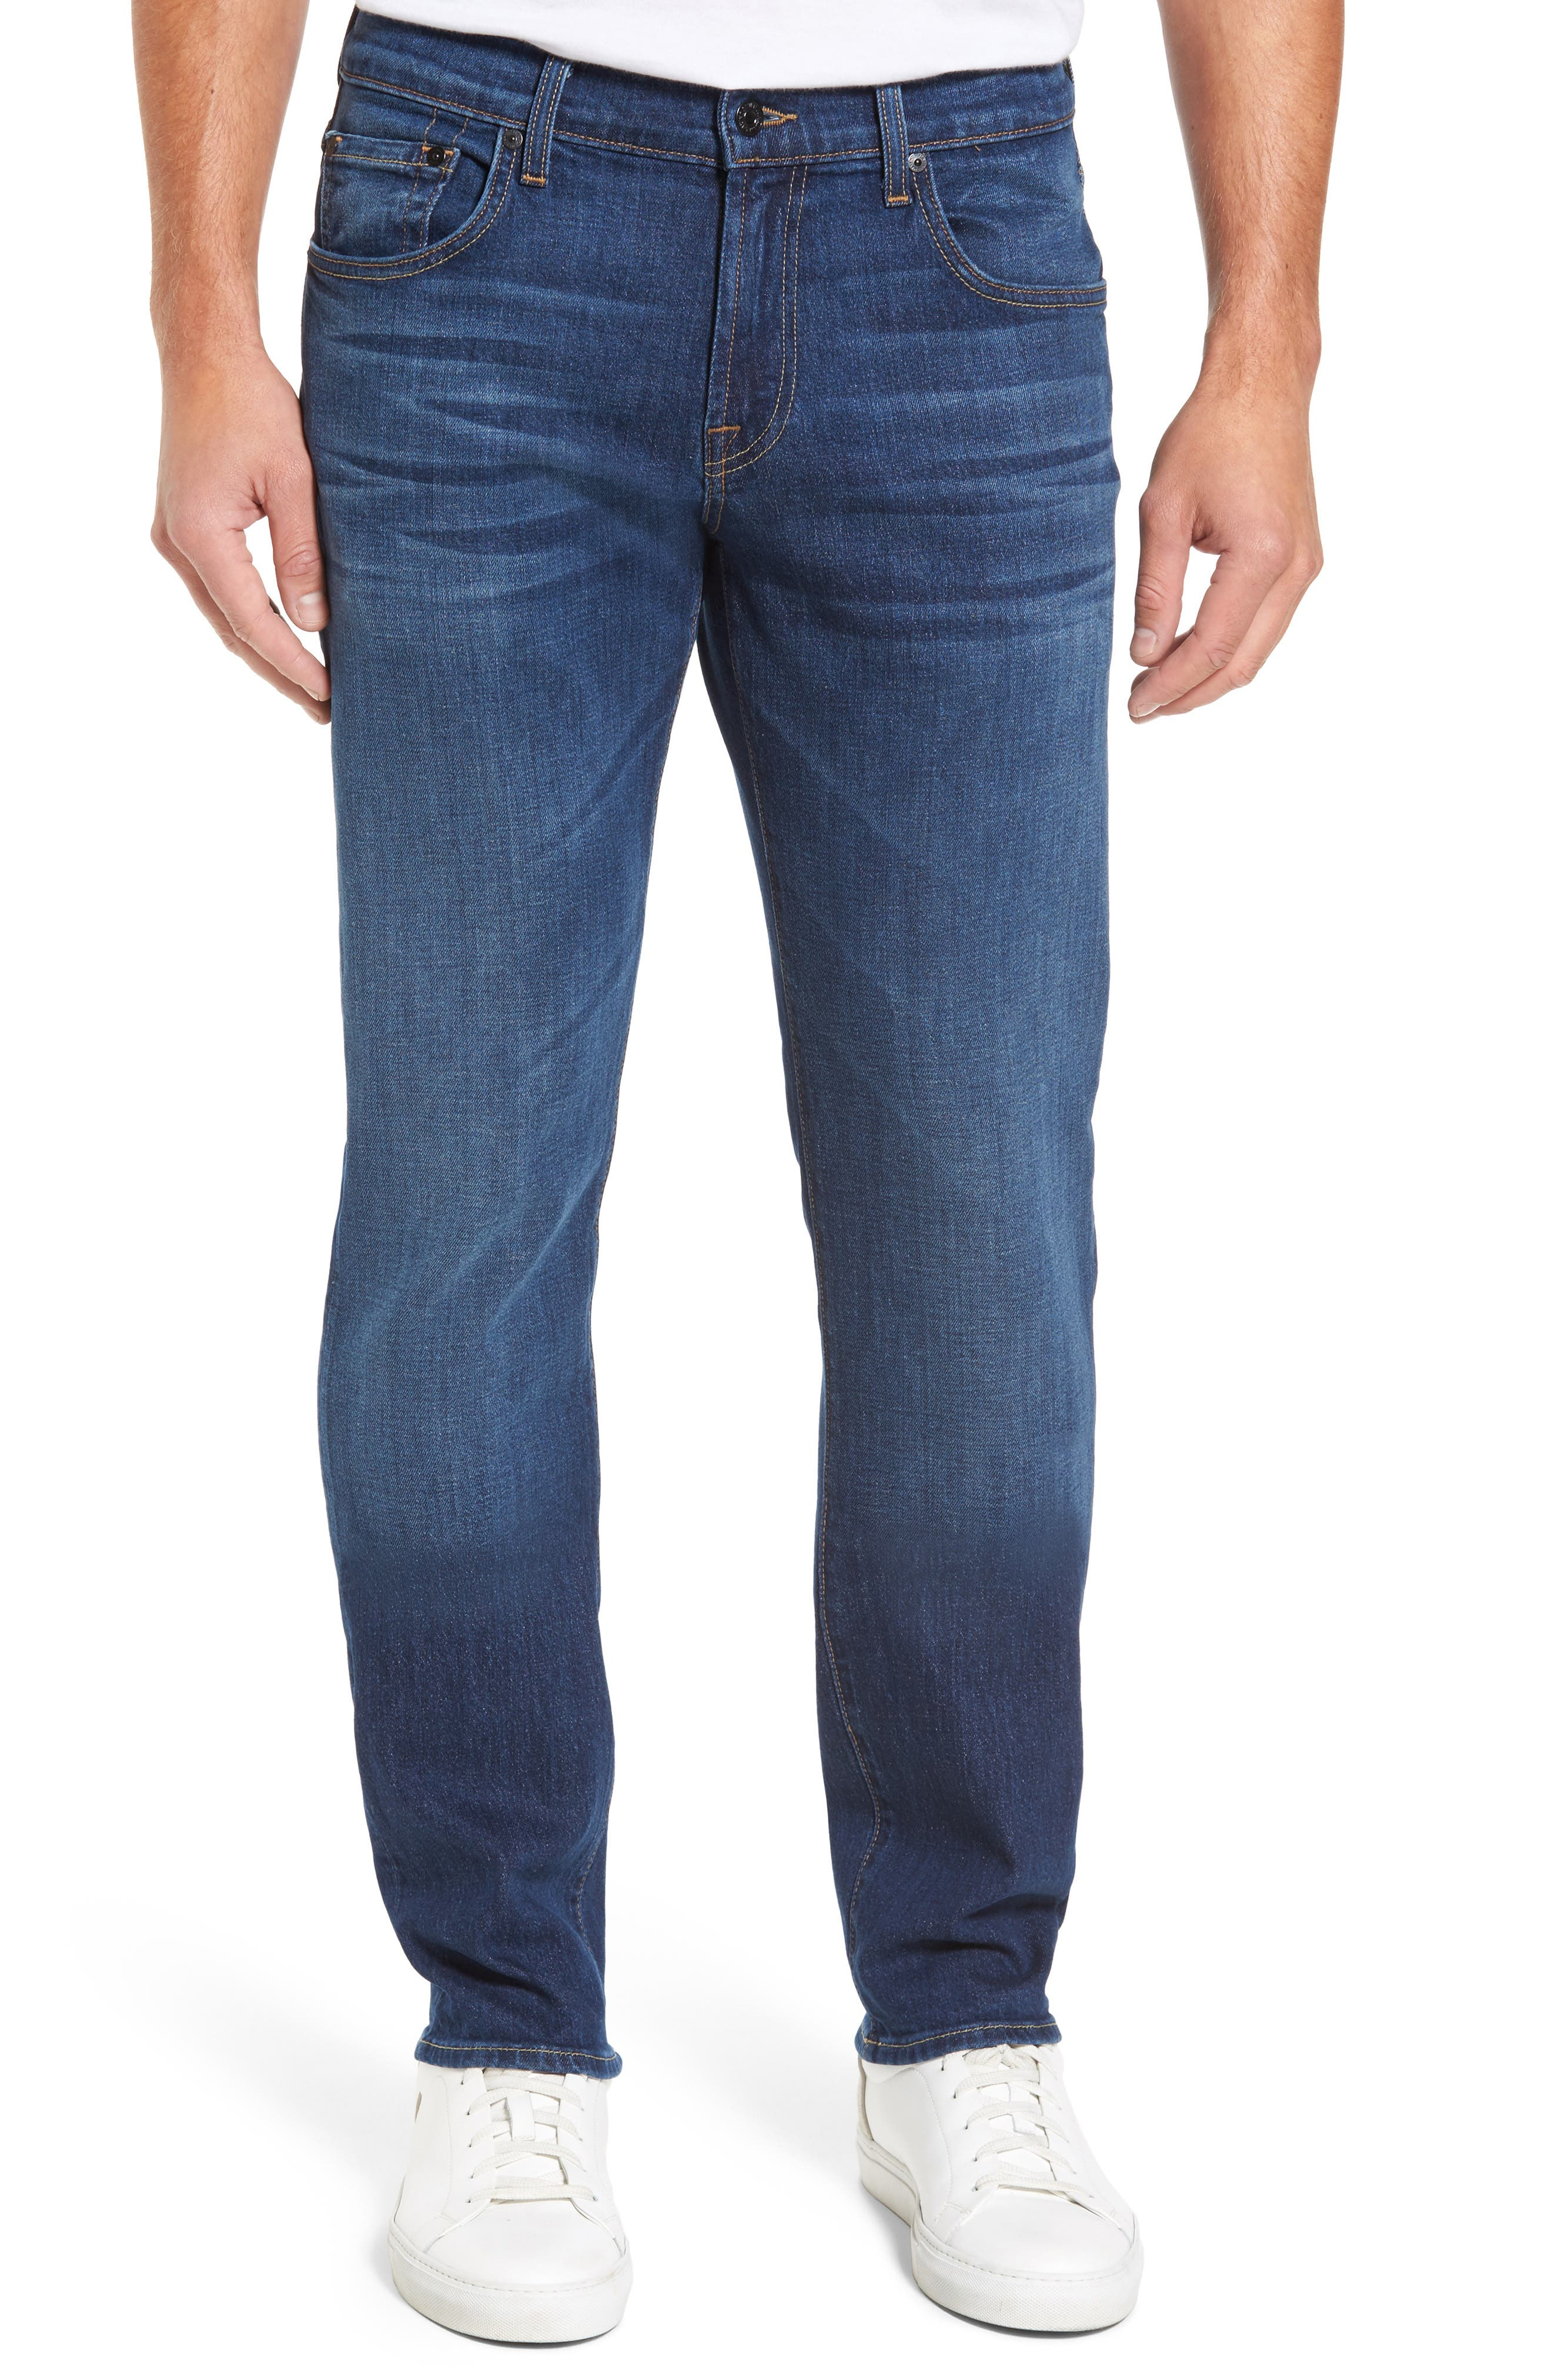 Alternate Image 1 Selected - 7 For All Mankind® The Straight Slim Straight Leg Jeans (Dimension)